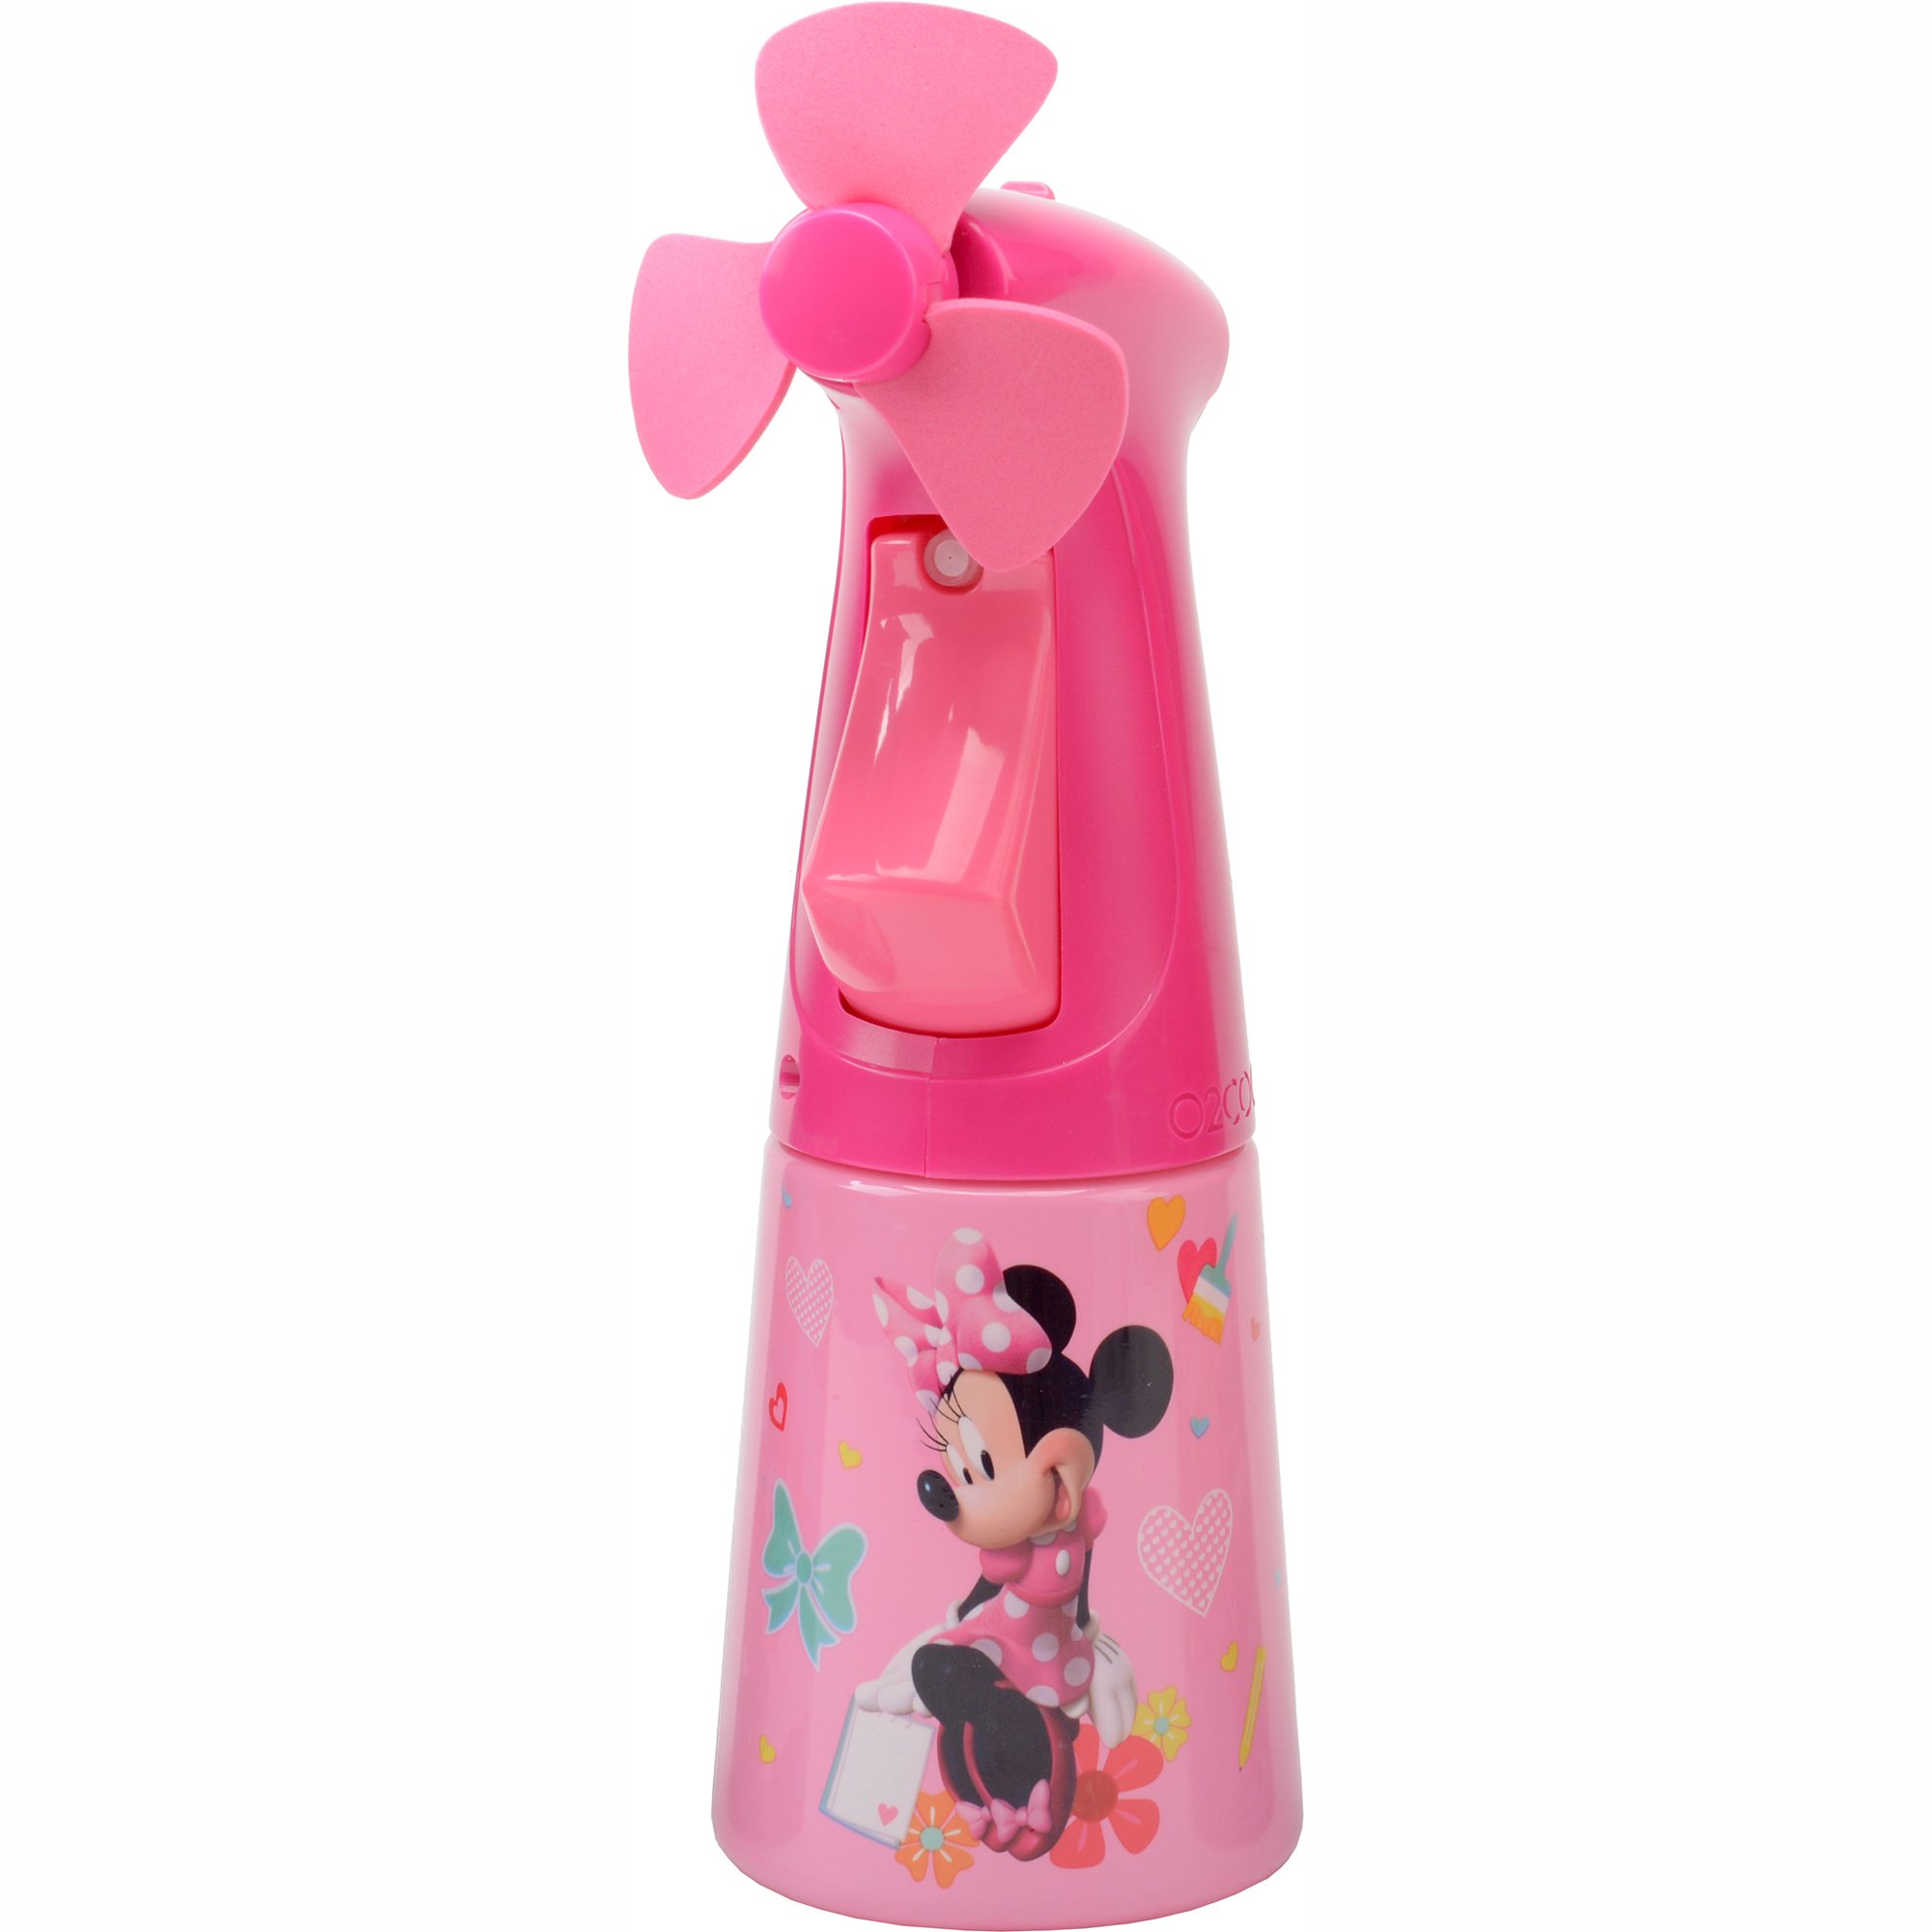 O2COOL Licensed Minnie Mouse Misting Fan